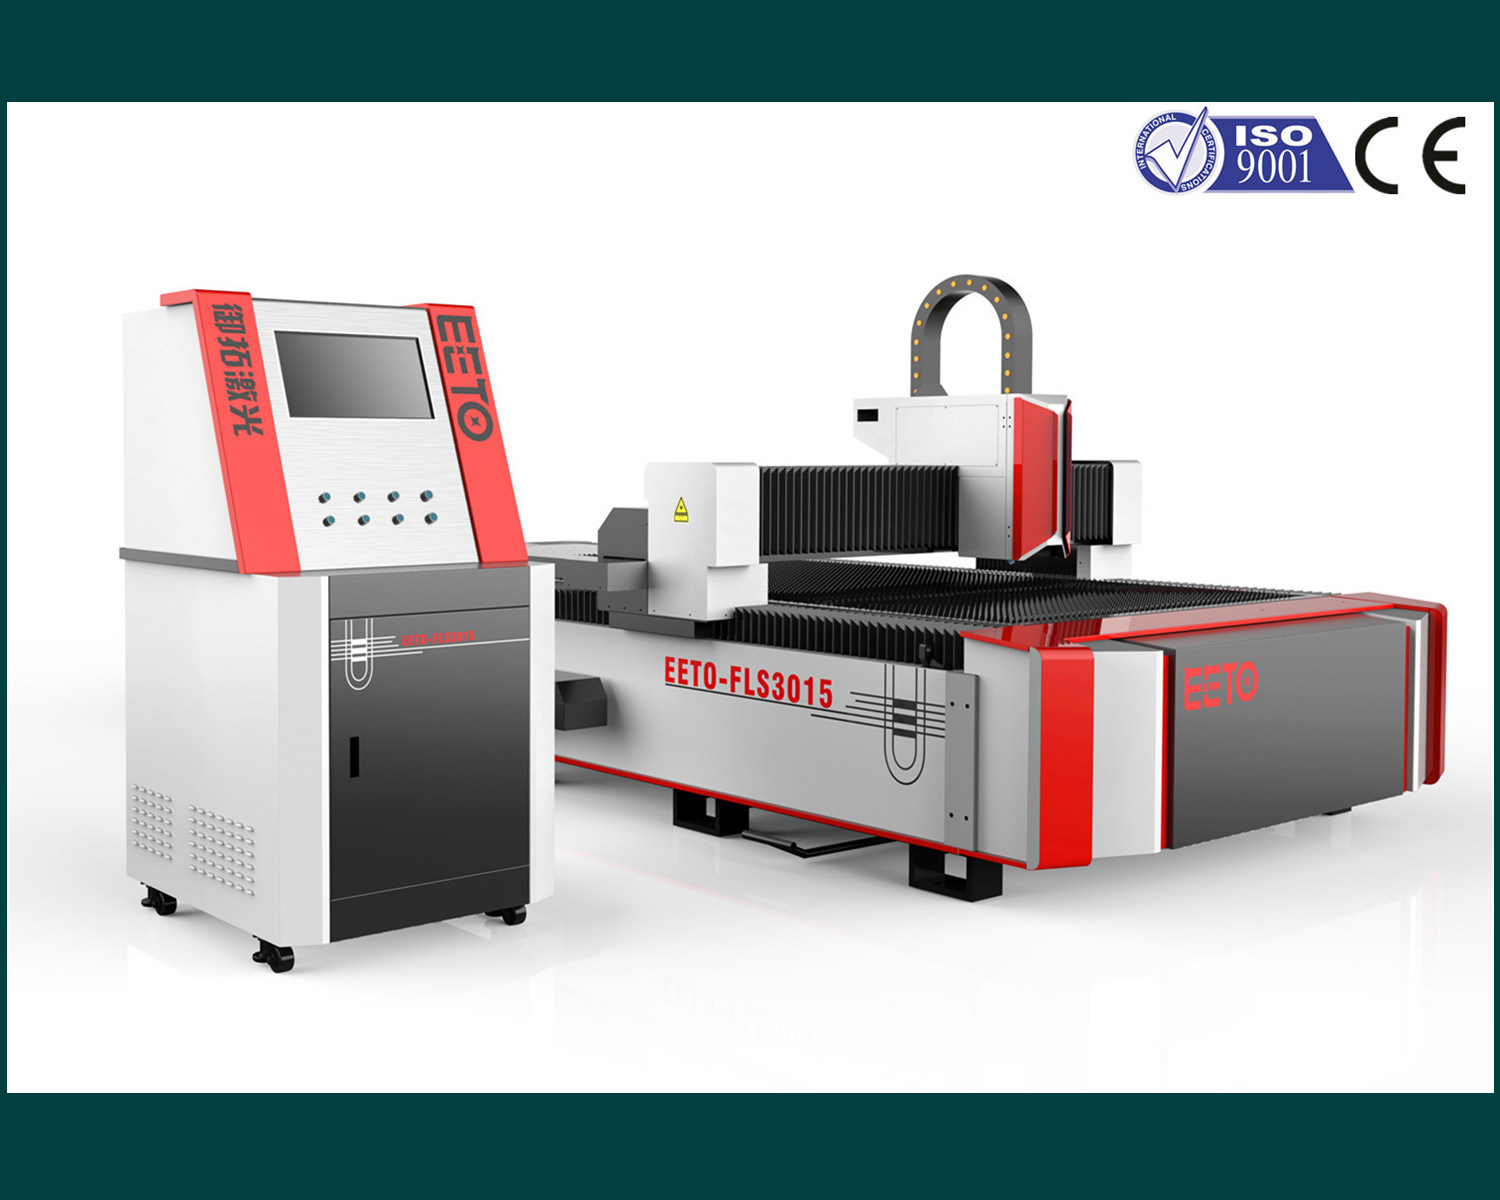 500W CNC Laser Equipment for Cutting Thin Metals